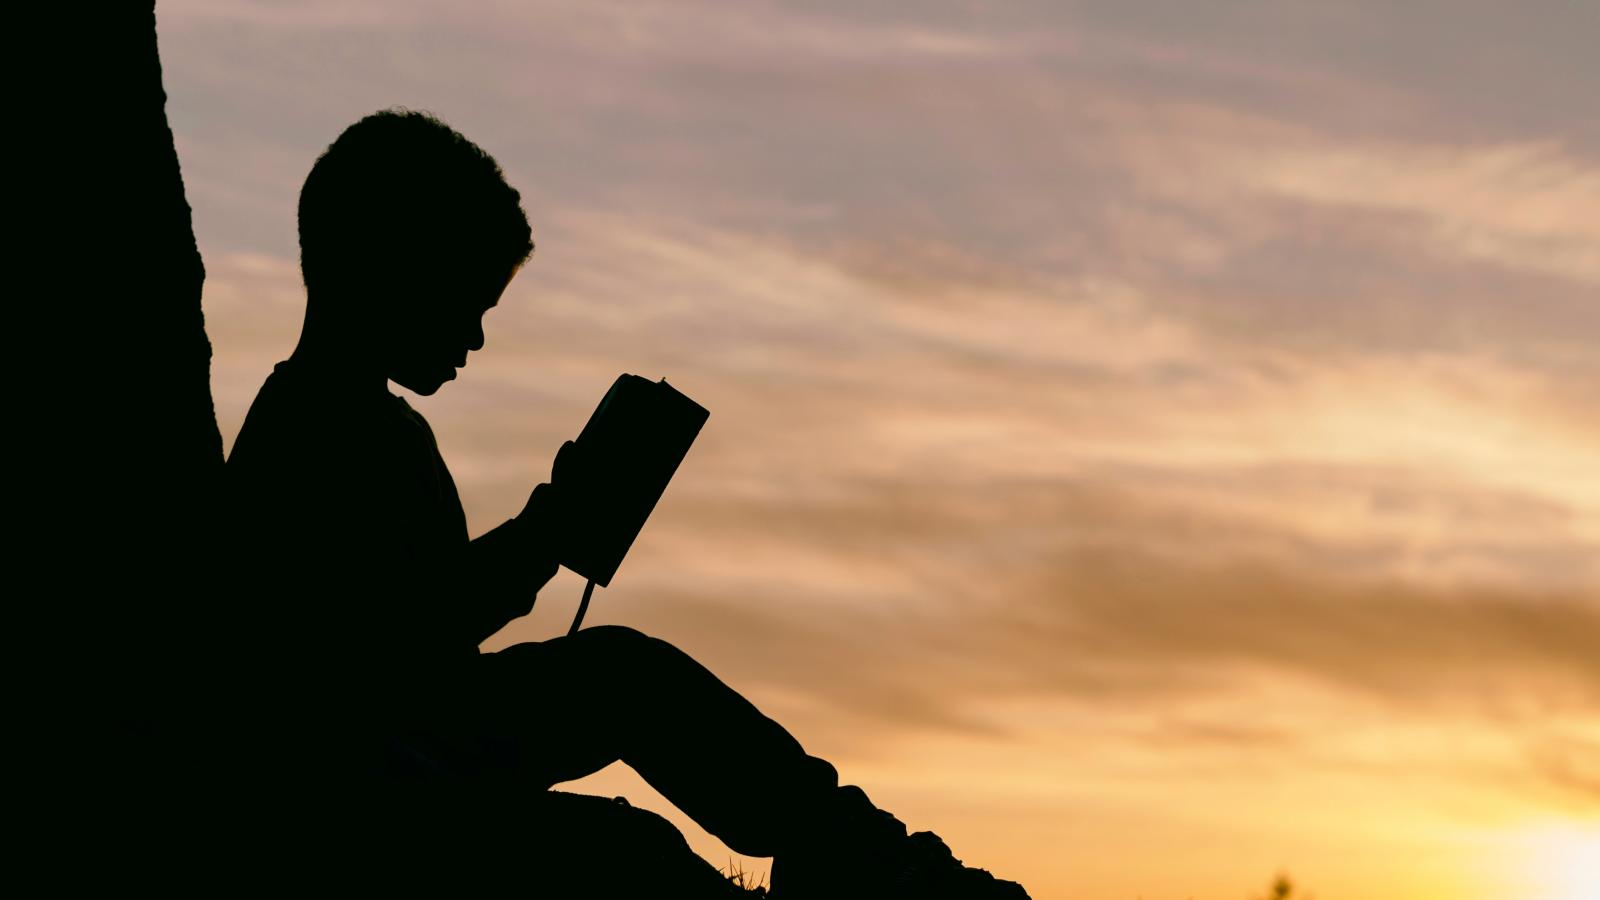 Silhouette of young boy reading a book against the sunset